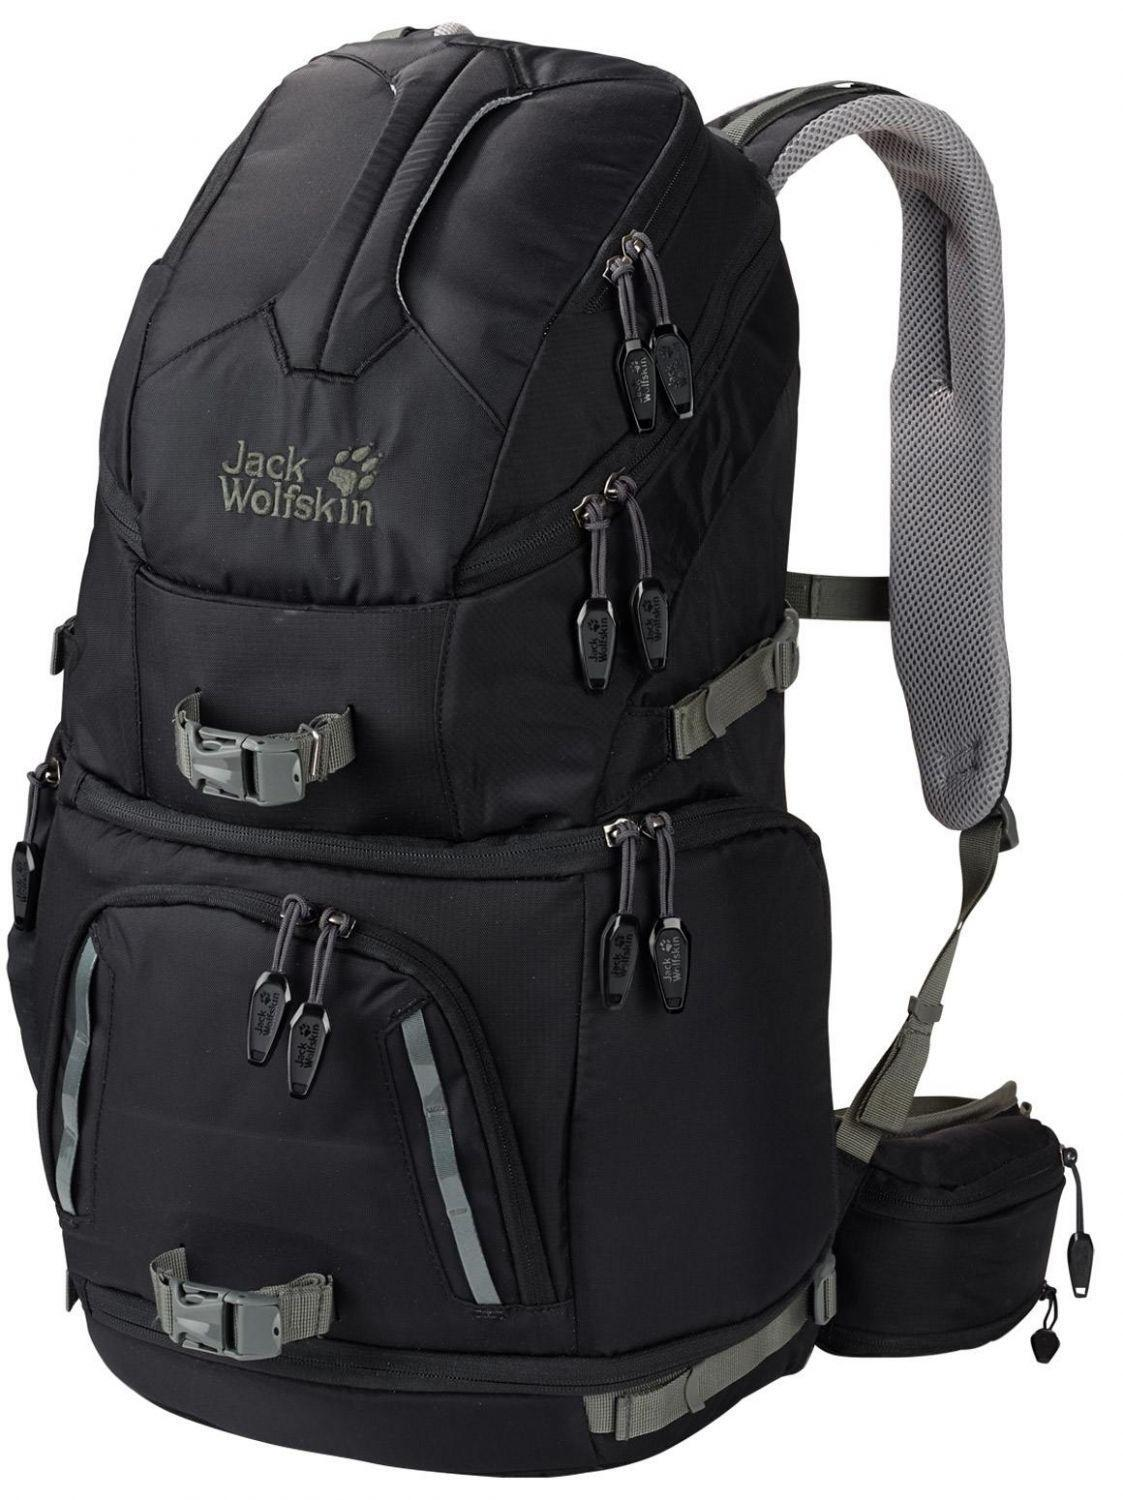 jack-wolfskin-acs-photo-pack-pro-laptoprucksack-farbe-6000-black-